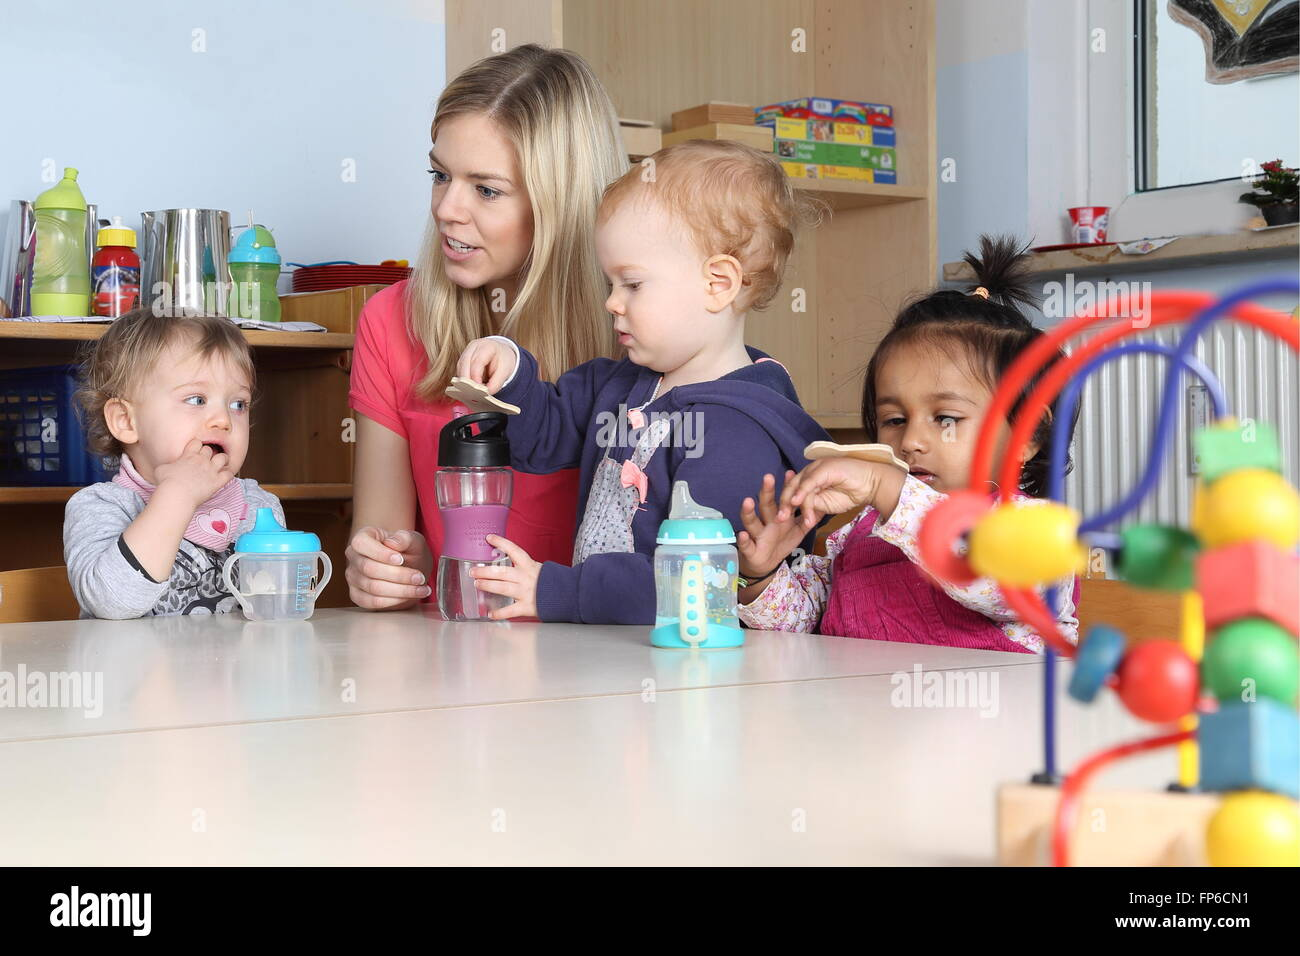 Some Kindergarten or nursery kidson a table drinking and playing - Stock Image